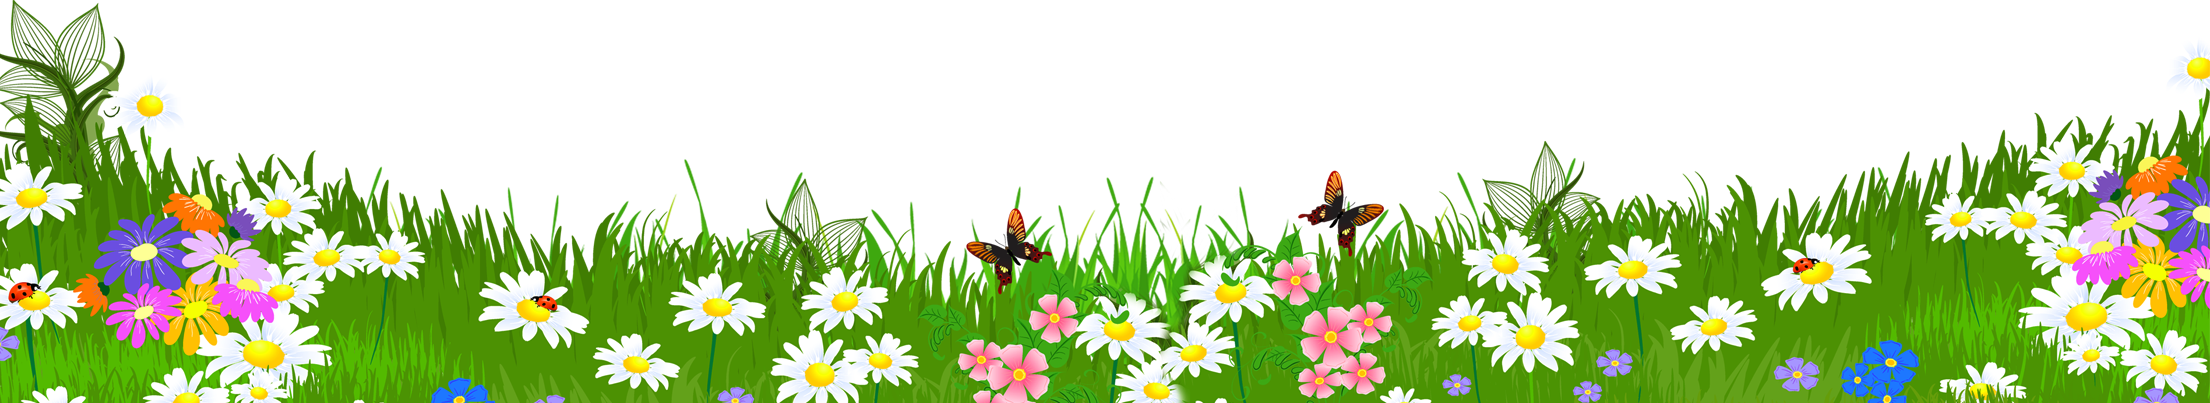 Clipart designs nature. Grass ground with flowers